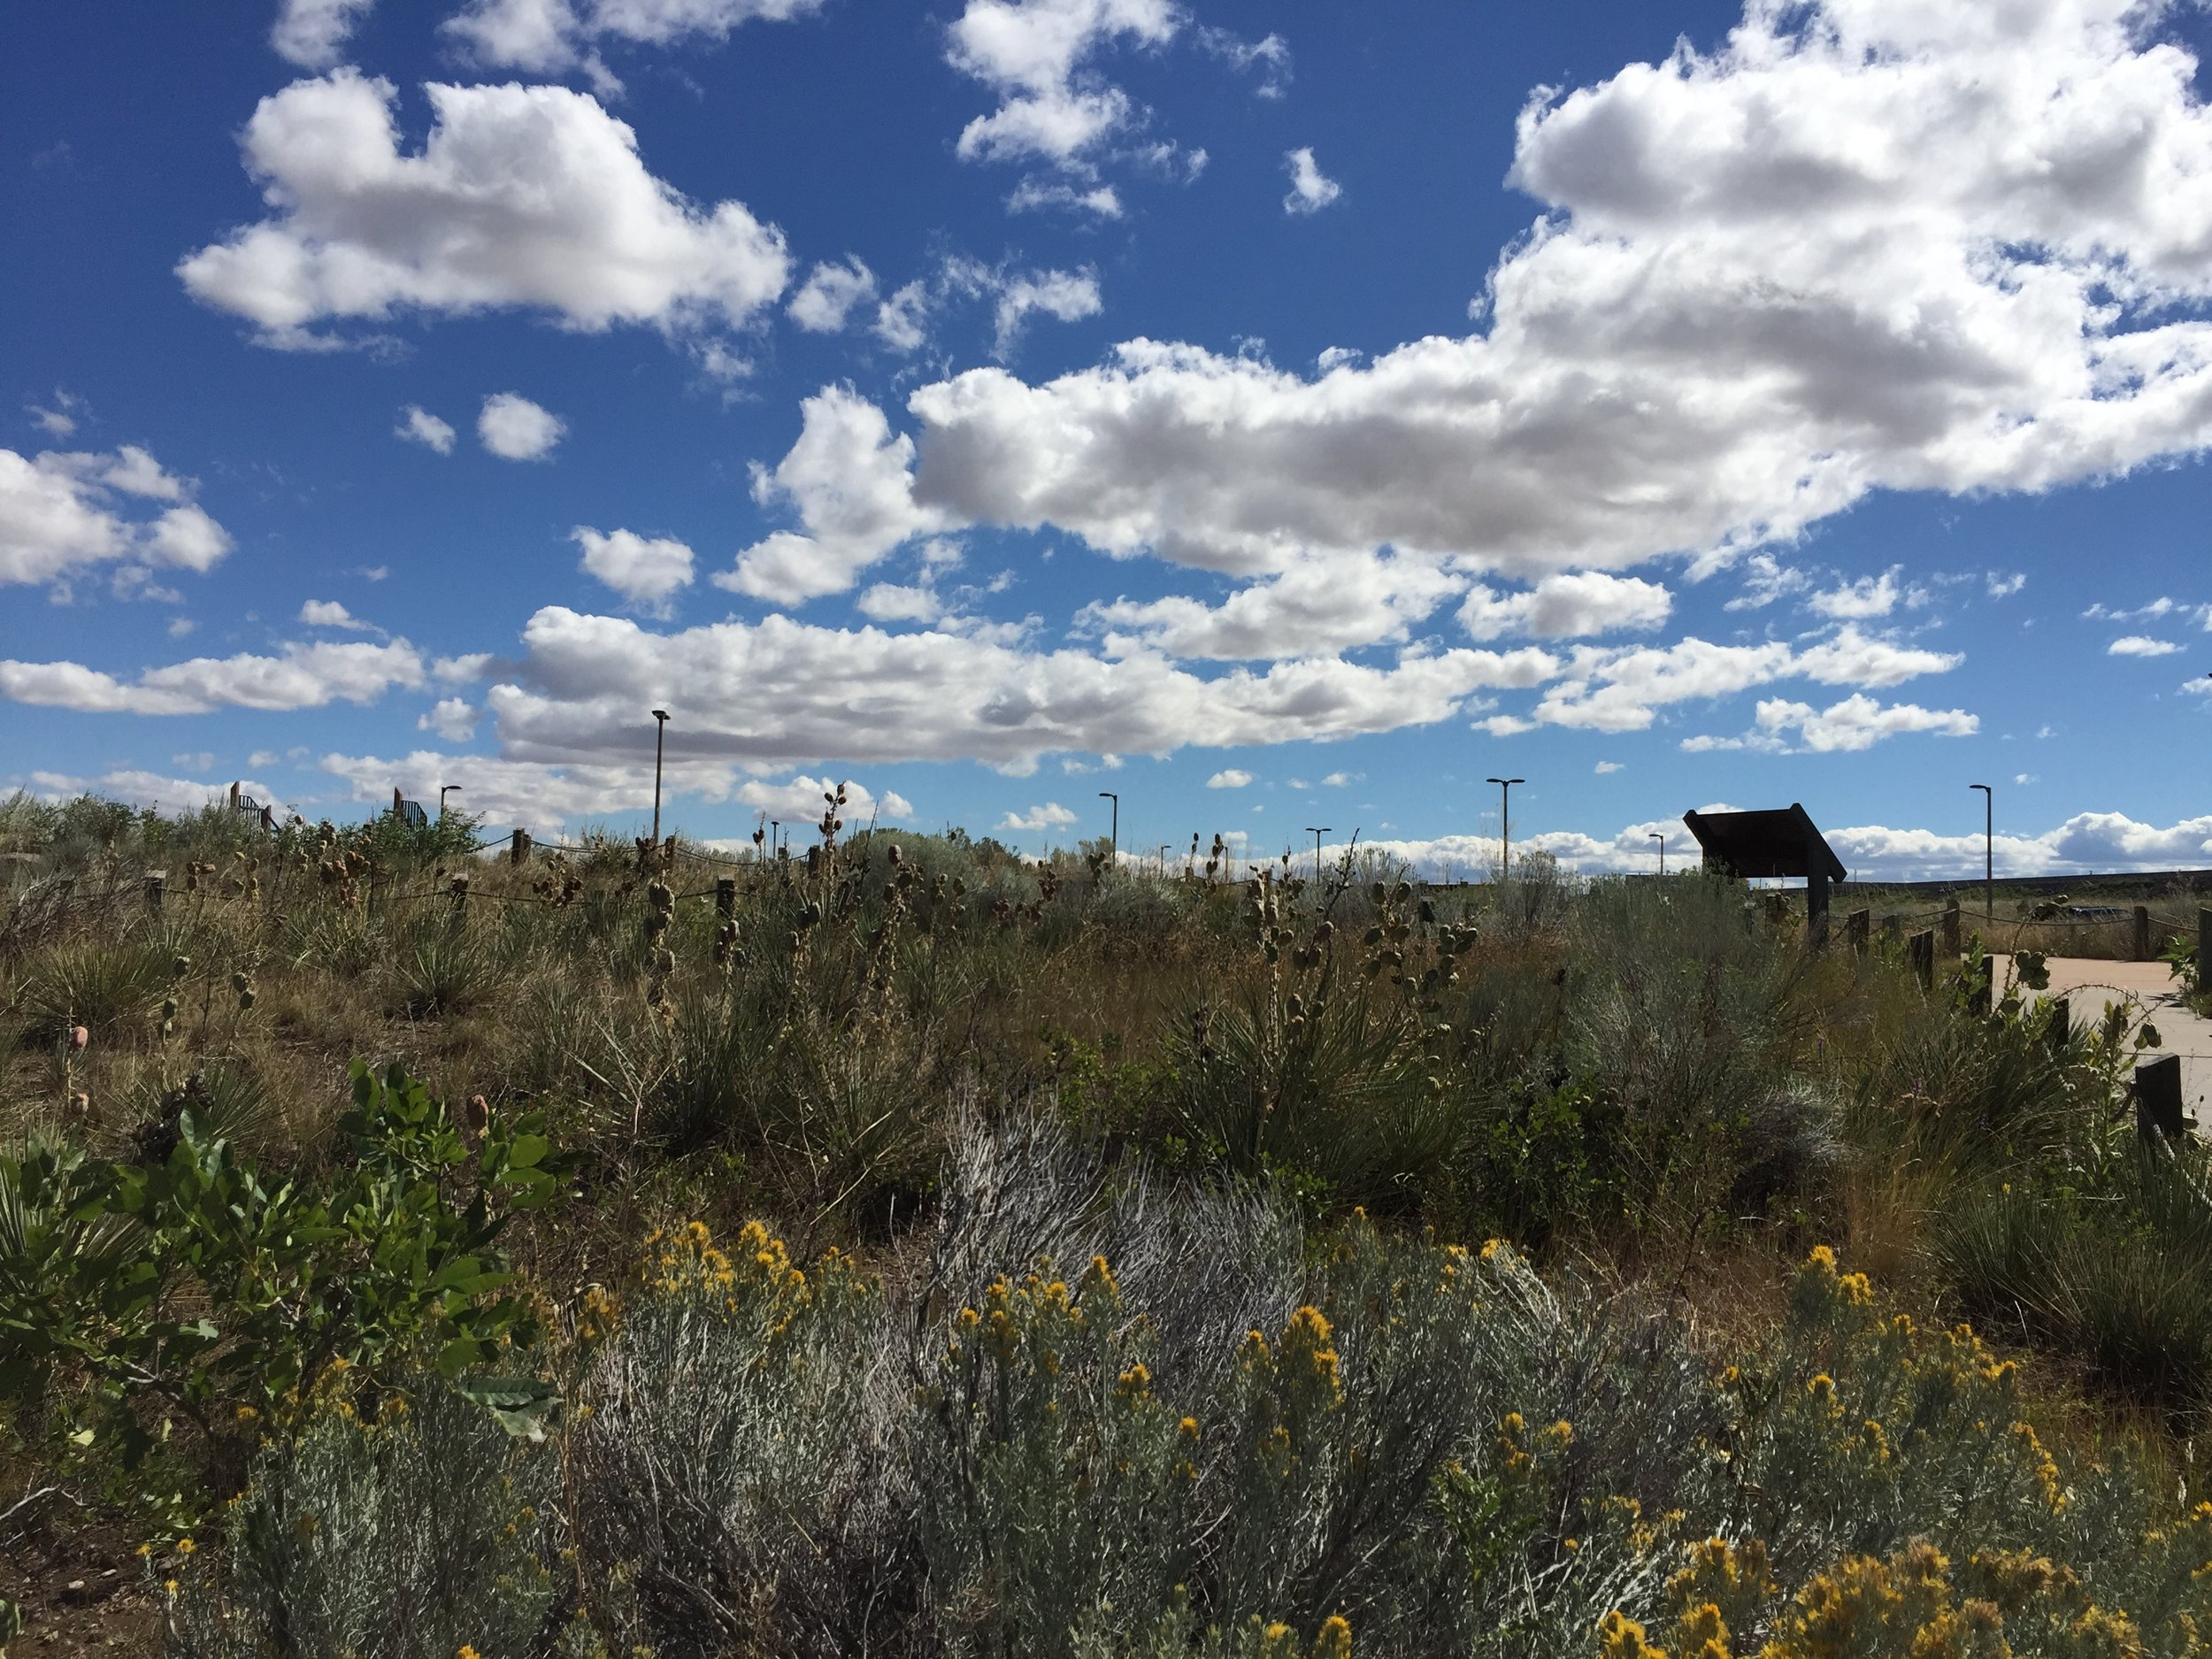 Beautiful skies and native vegetation showcasing the natural beauty at the Lewis & Clark Interpretive Center.